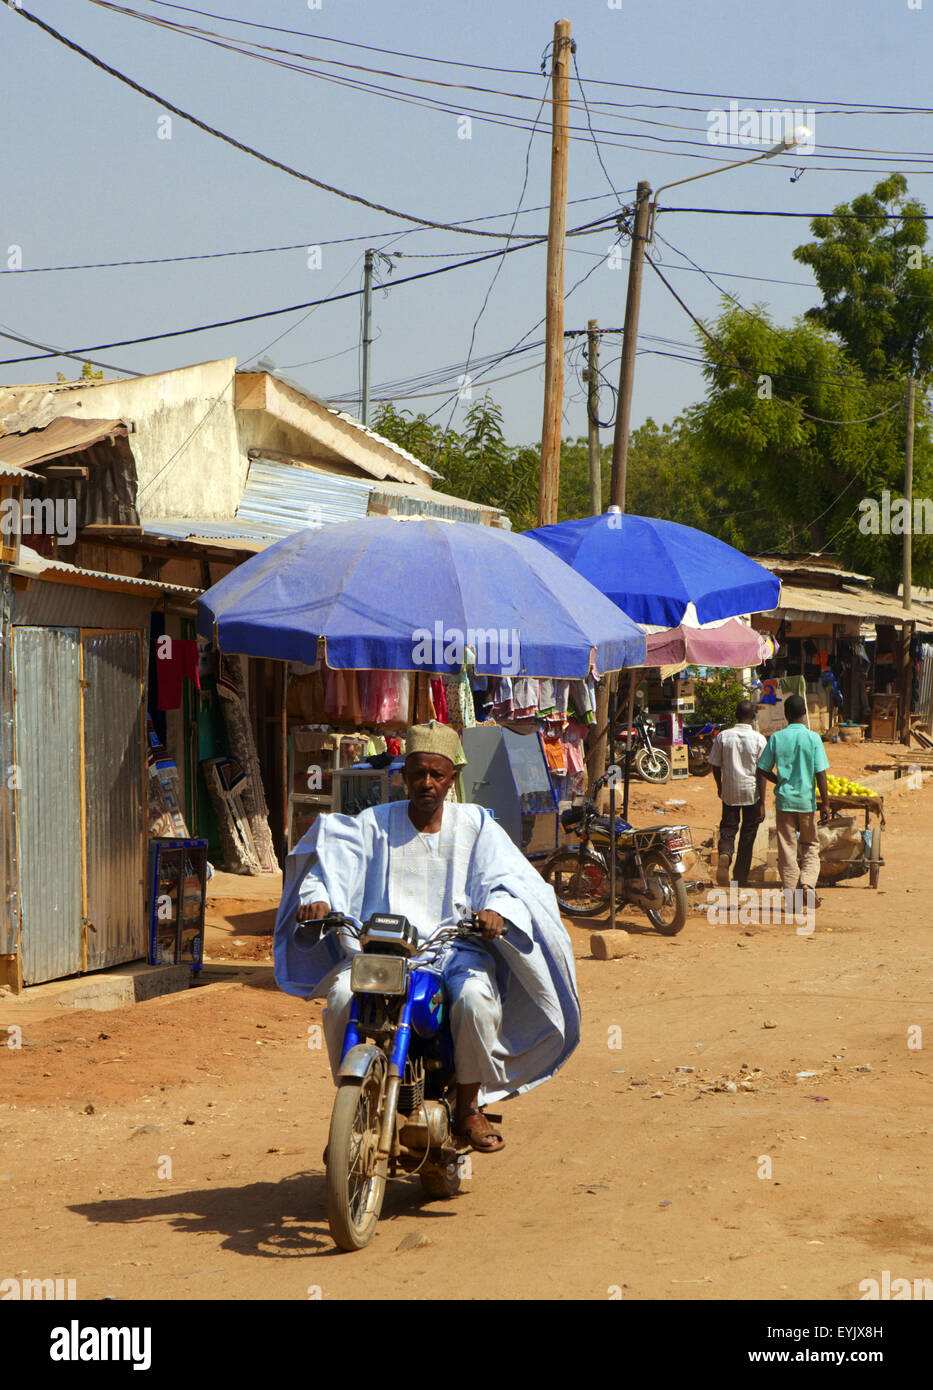 Africa, Cameroon, North Province, Garoua city, the market andthe moto taxis - Stock Image